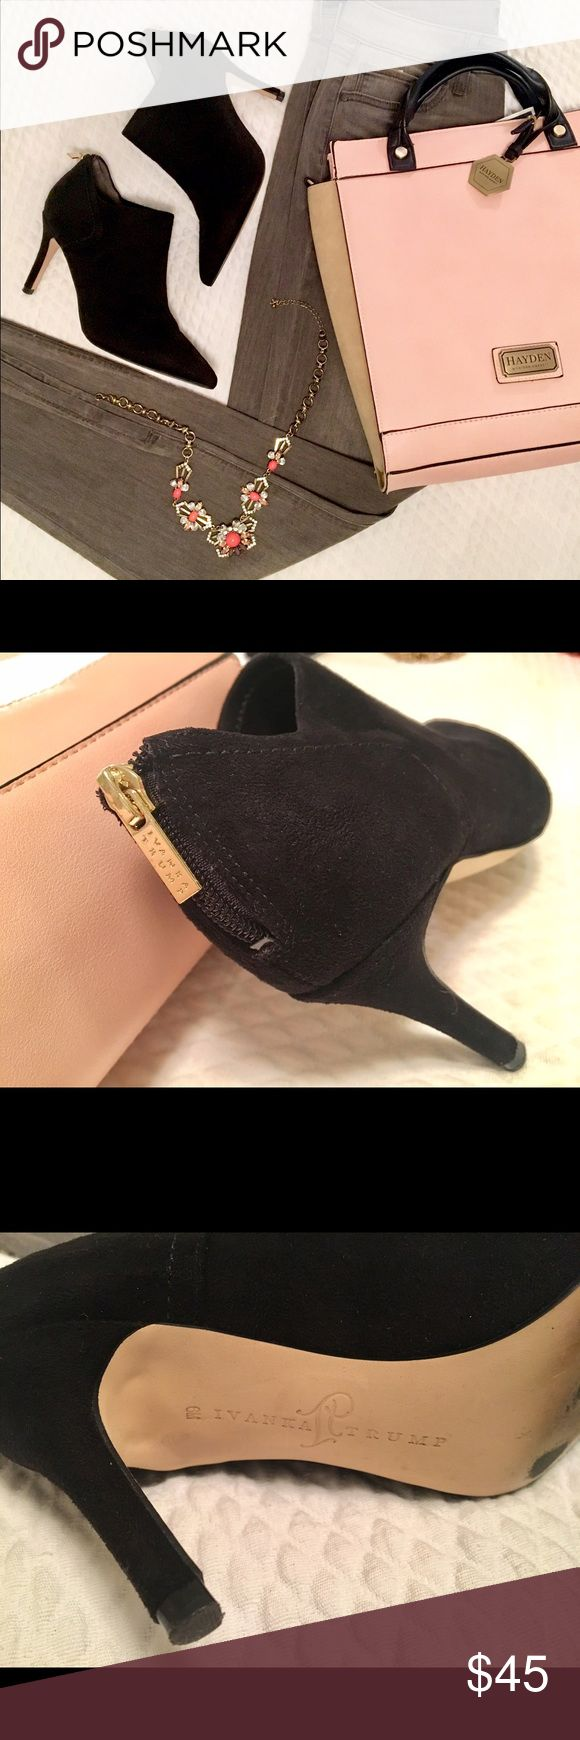 Sale! Ivanka Trump ankle booties with back zipper Sexy ankle booties with a back zipper in gold from Ivanka Trump. Worn twice, great condition with soles reflecting that shoes have been worn. Size 6.  [Jeans, purse and necklace also for sale] Ivanka Trump Shoes Ankle Boots & Booties